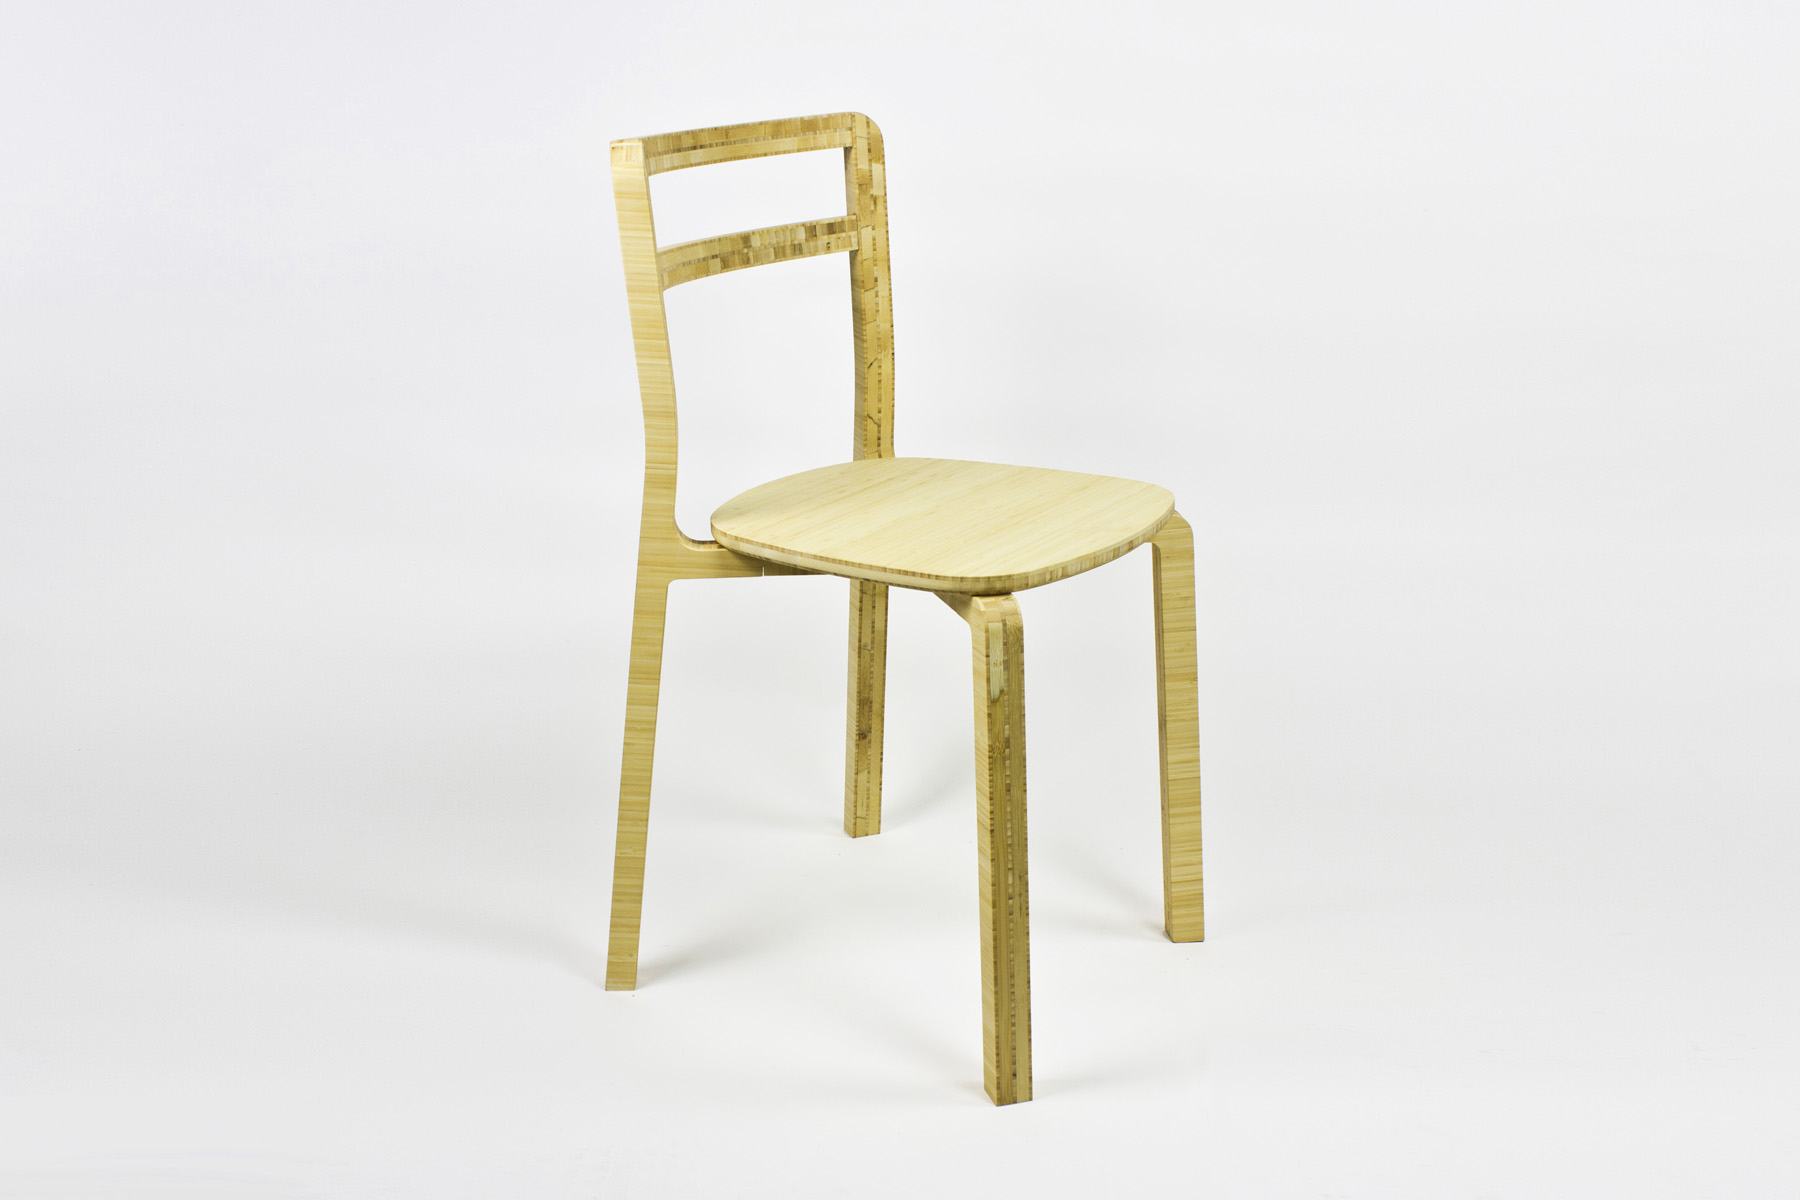 Boo_DiningChair__BenTovimDesign6.jpg